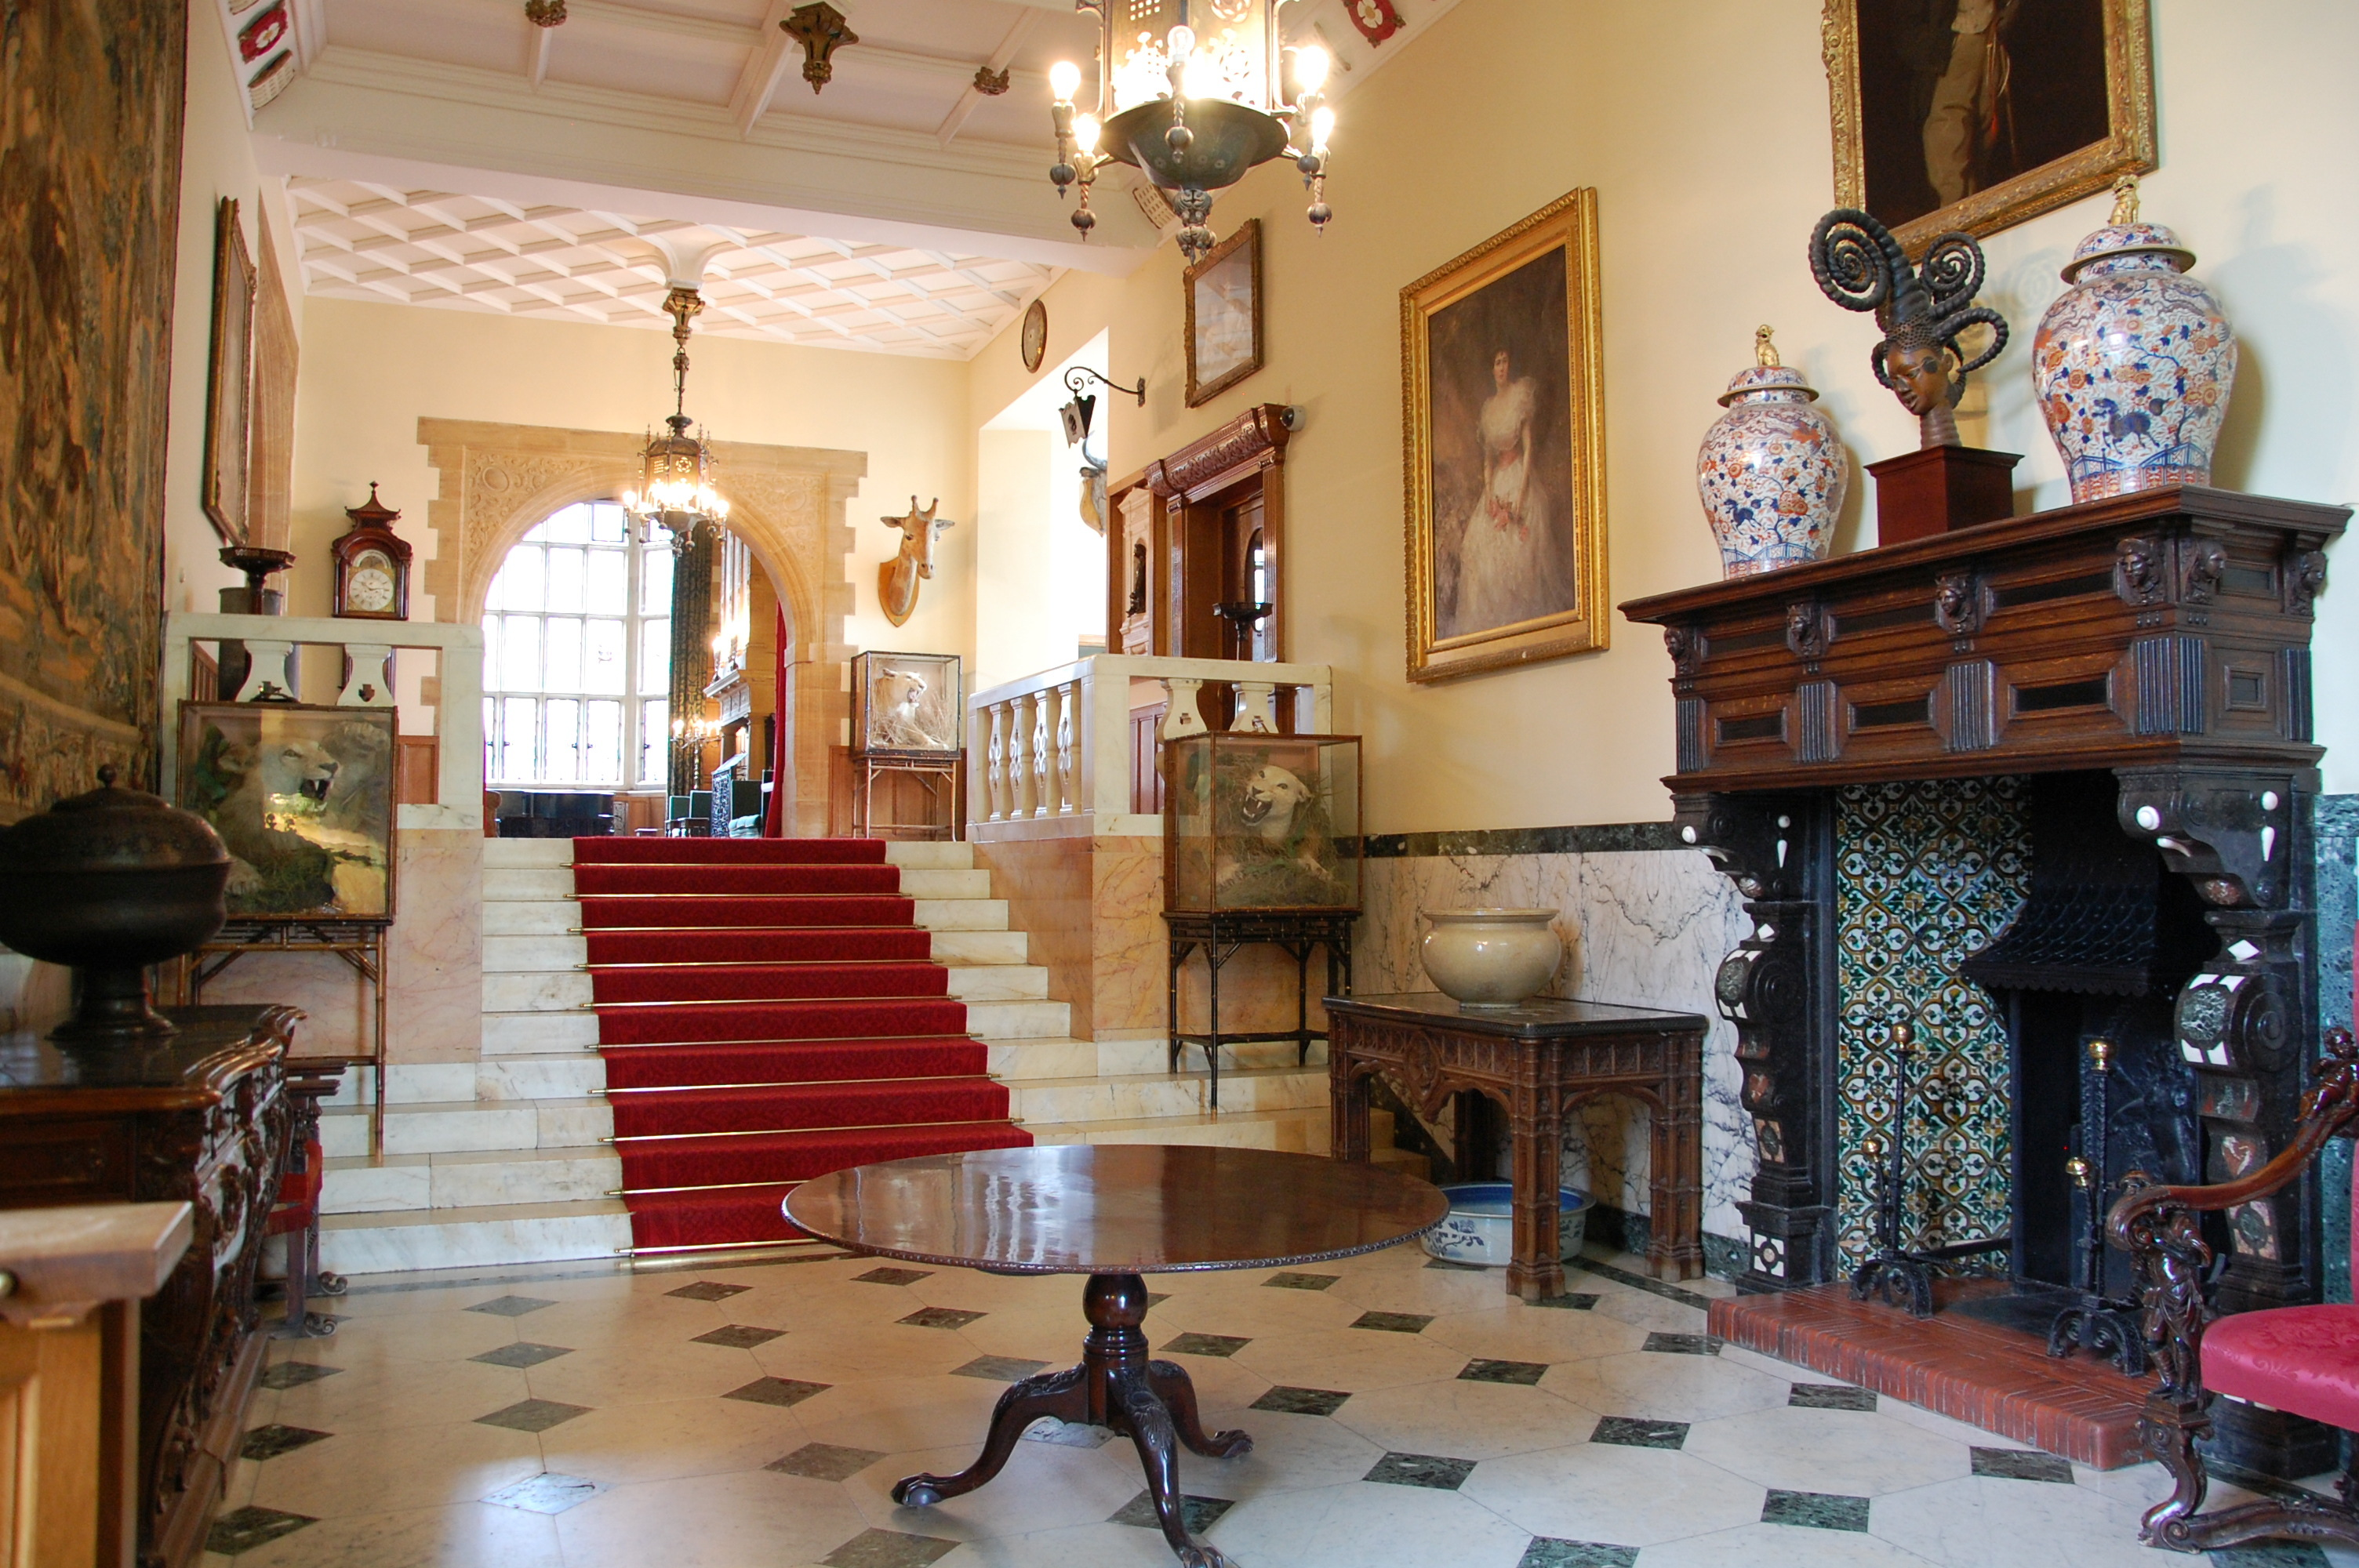 Late availability B&B accommodation for art lovers at West Dean College